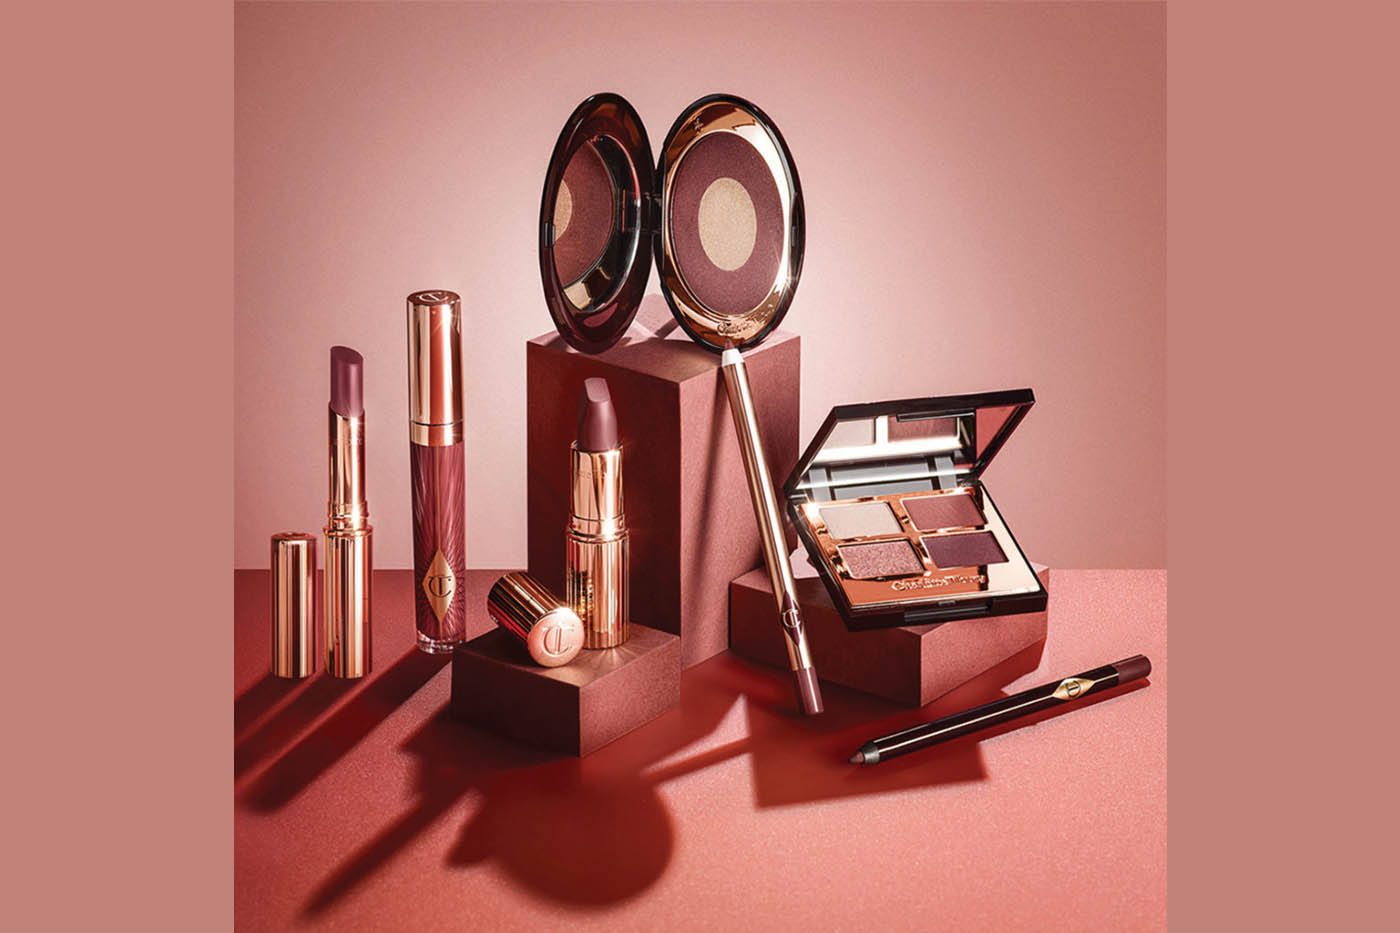 Charlotte Tilbury partners with Nykaa to launch in India